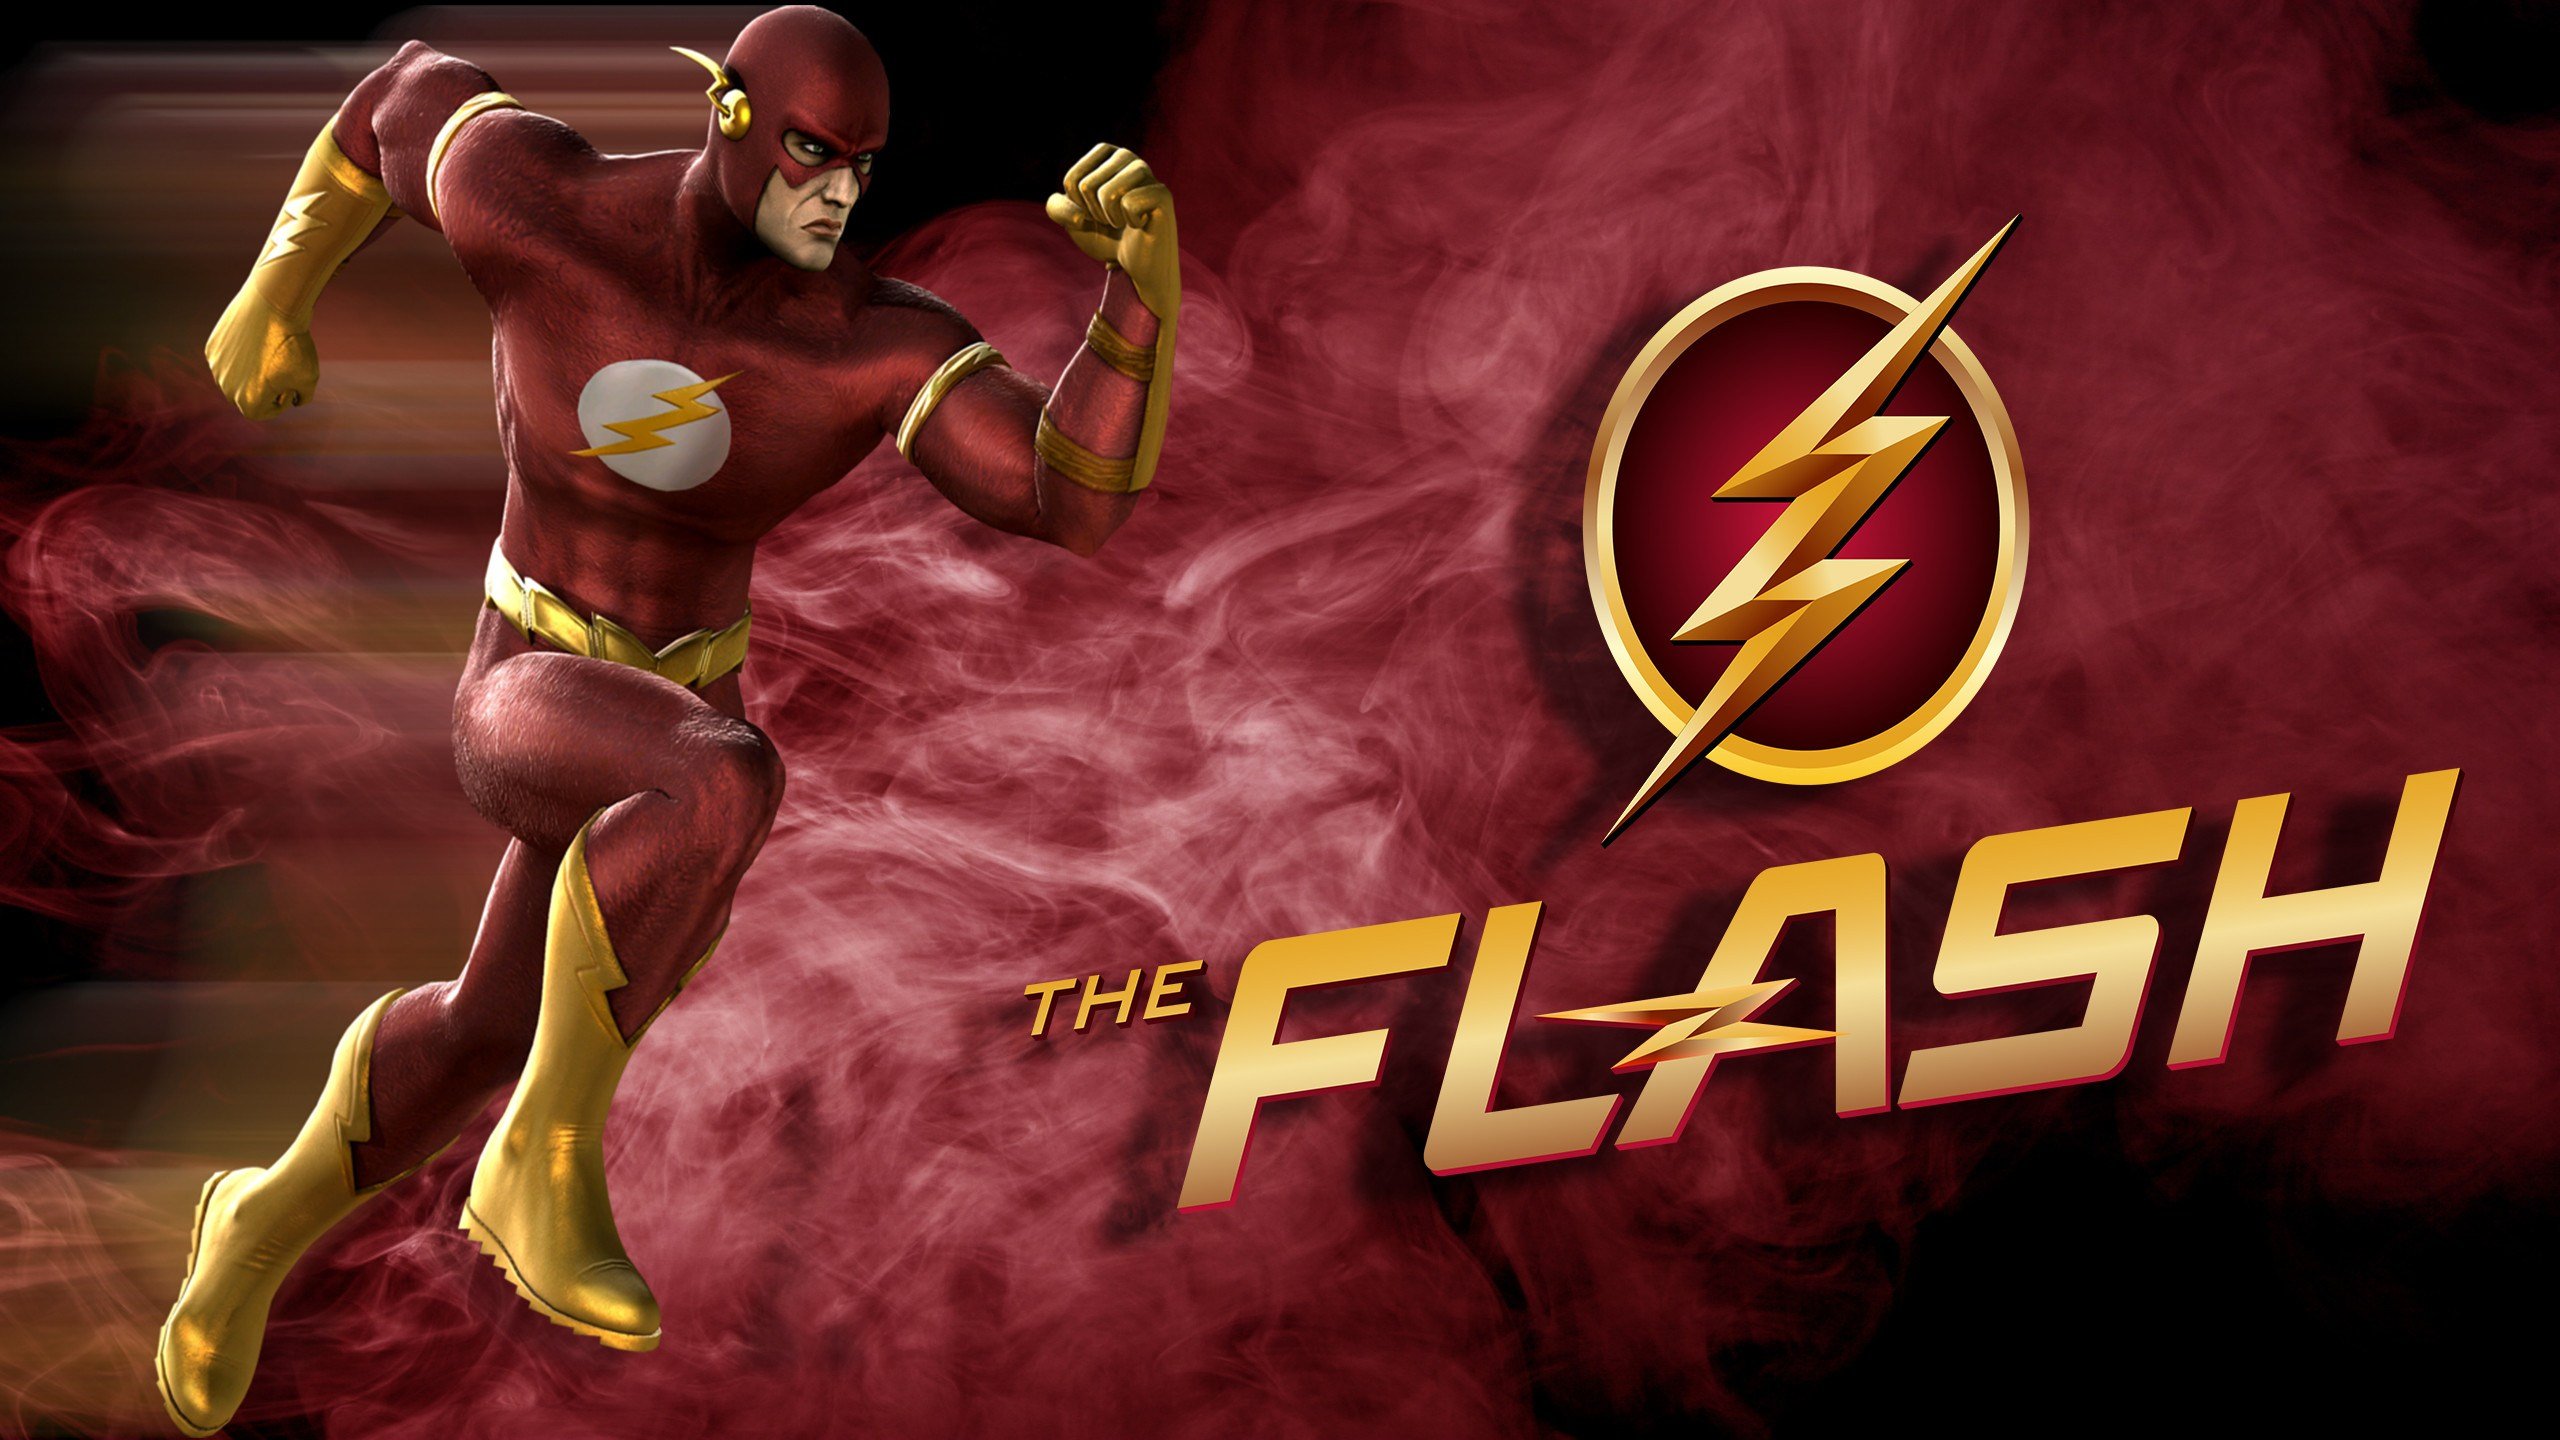 flash barry allen dc comics hd background image wallpaper